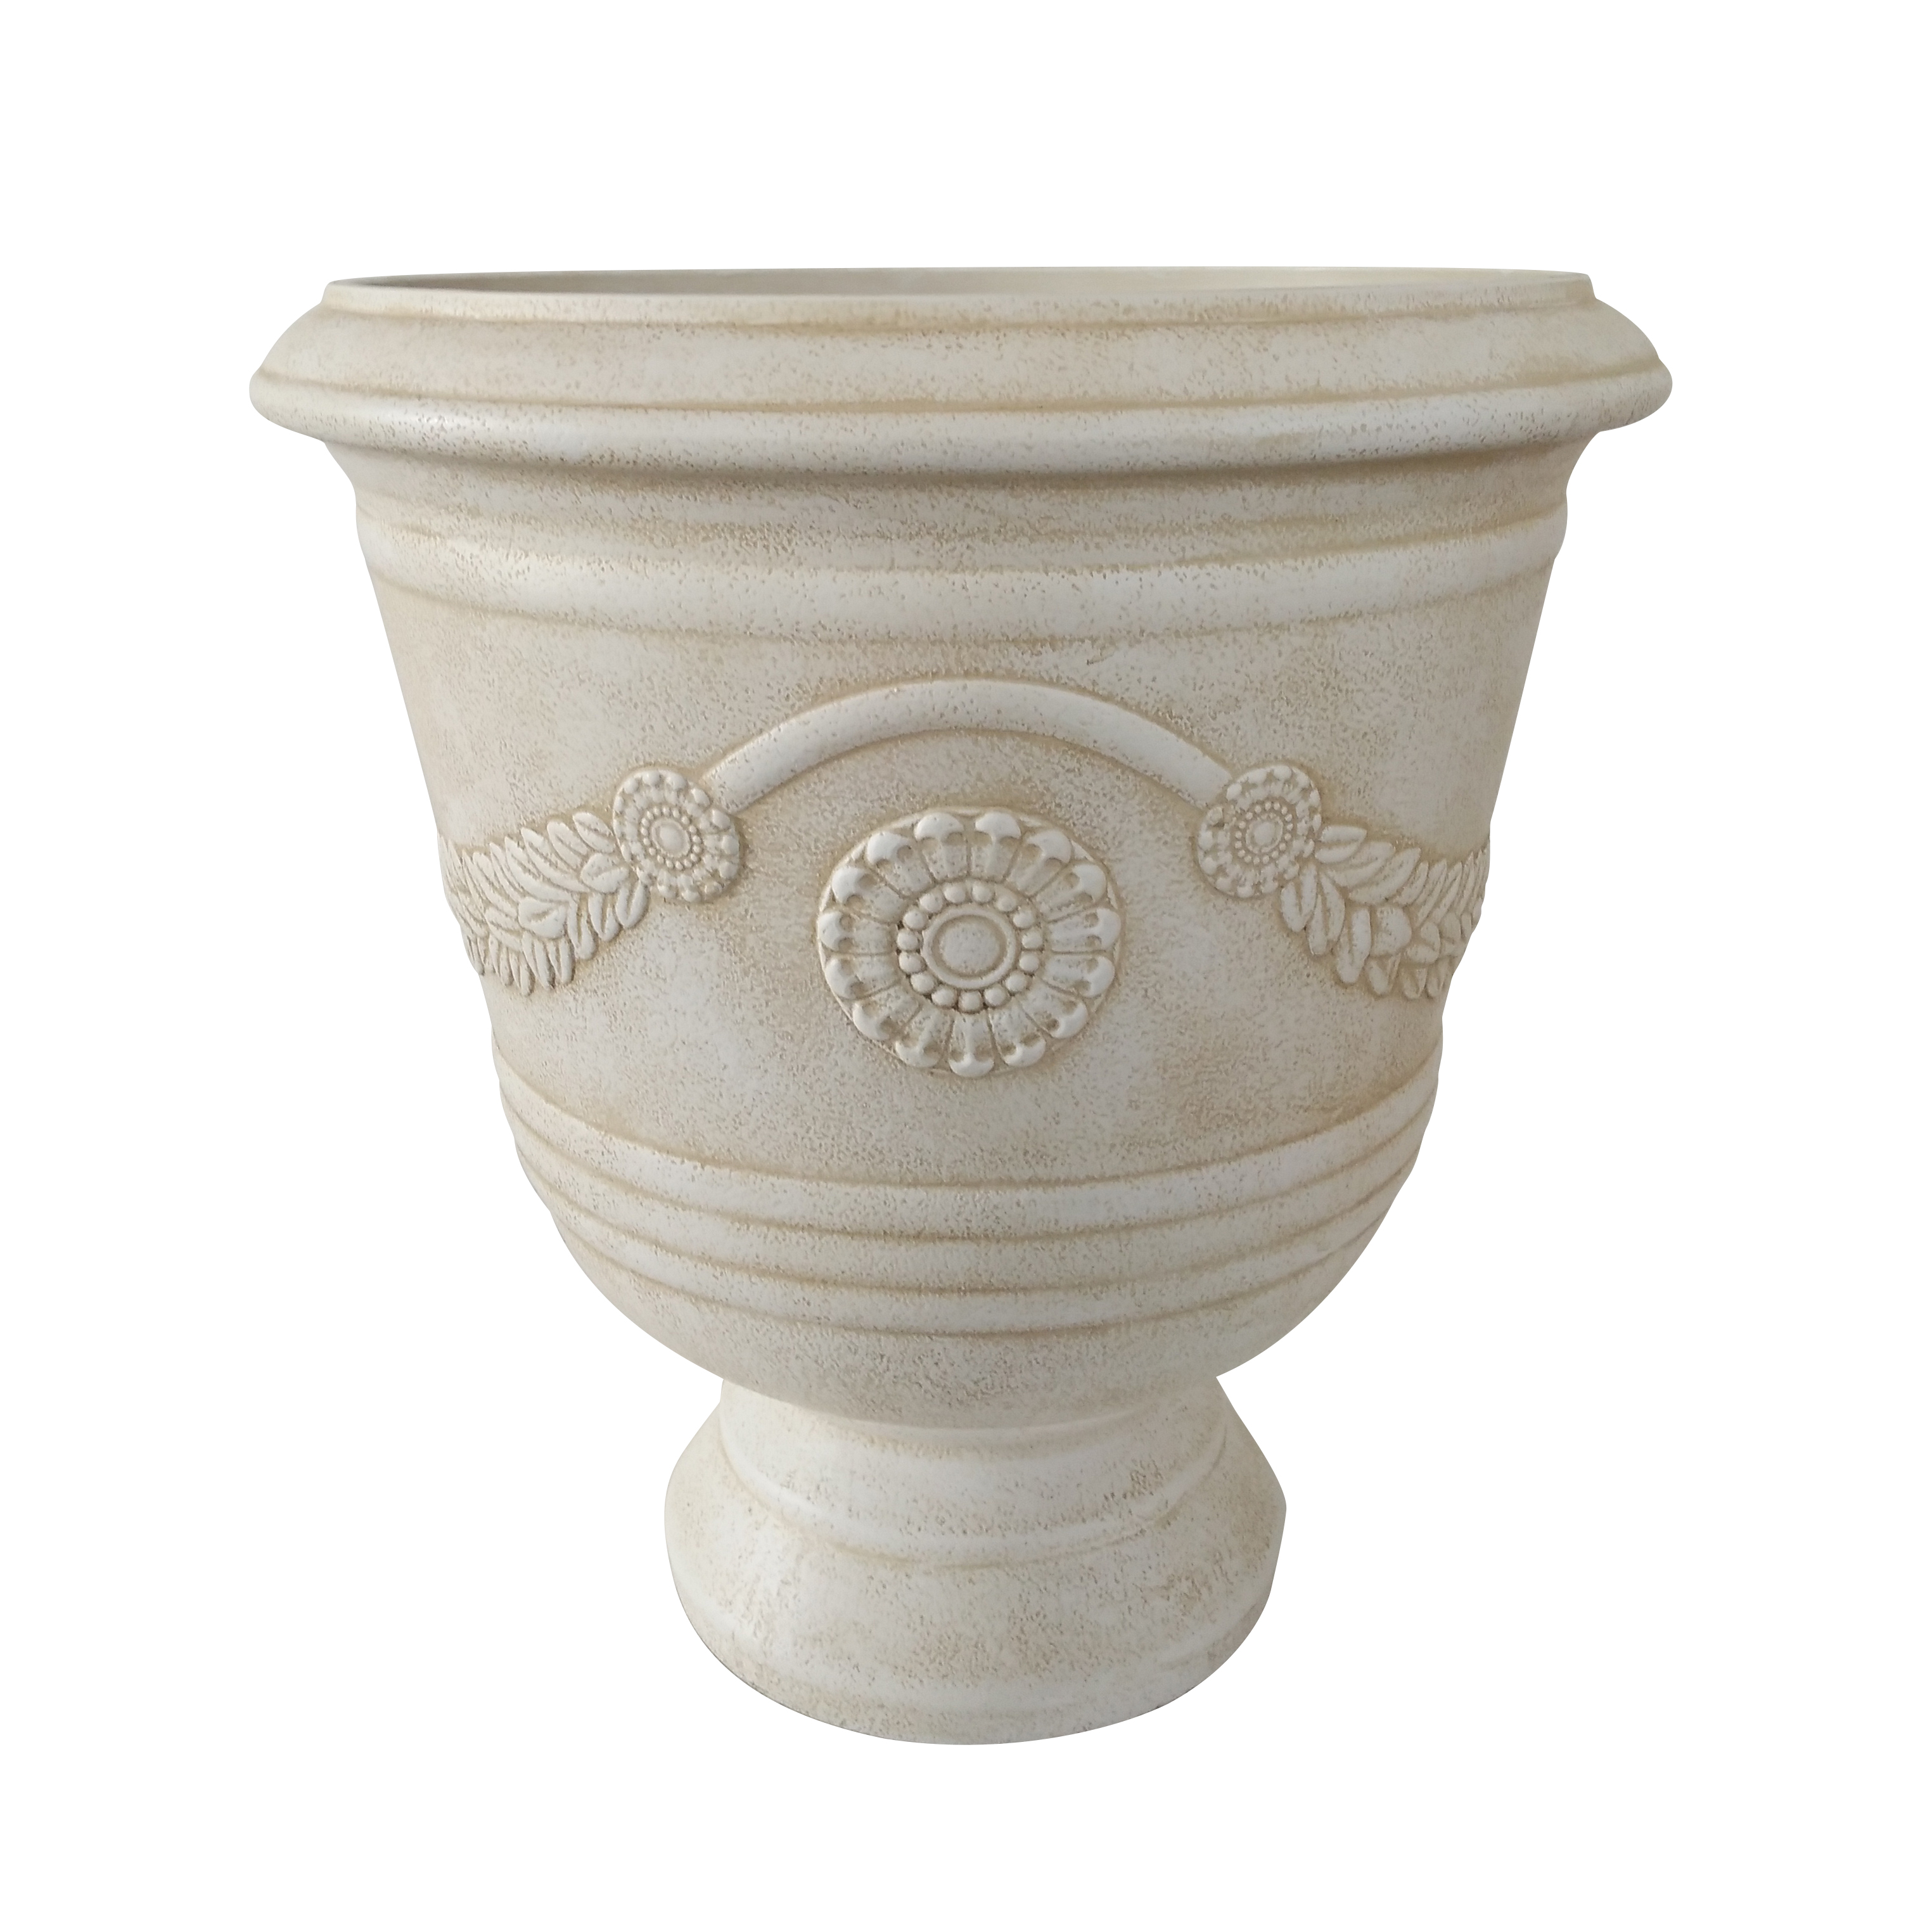 Better Homes and Gardens Greythorne 17 in. Outdoor Urn Planter Set of 2 by ATT SOUTHERN INC